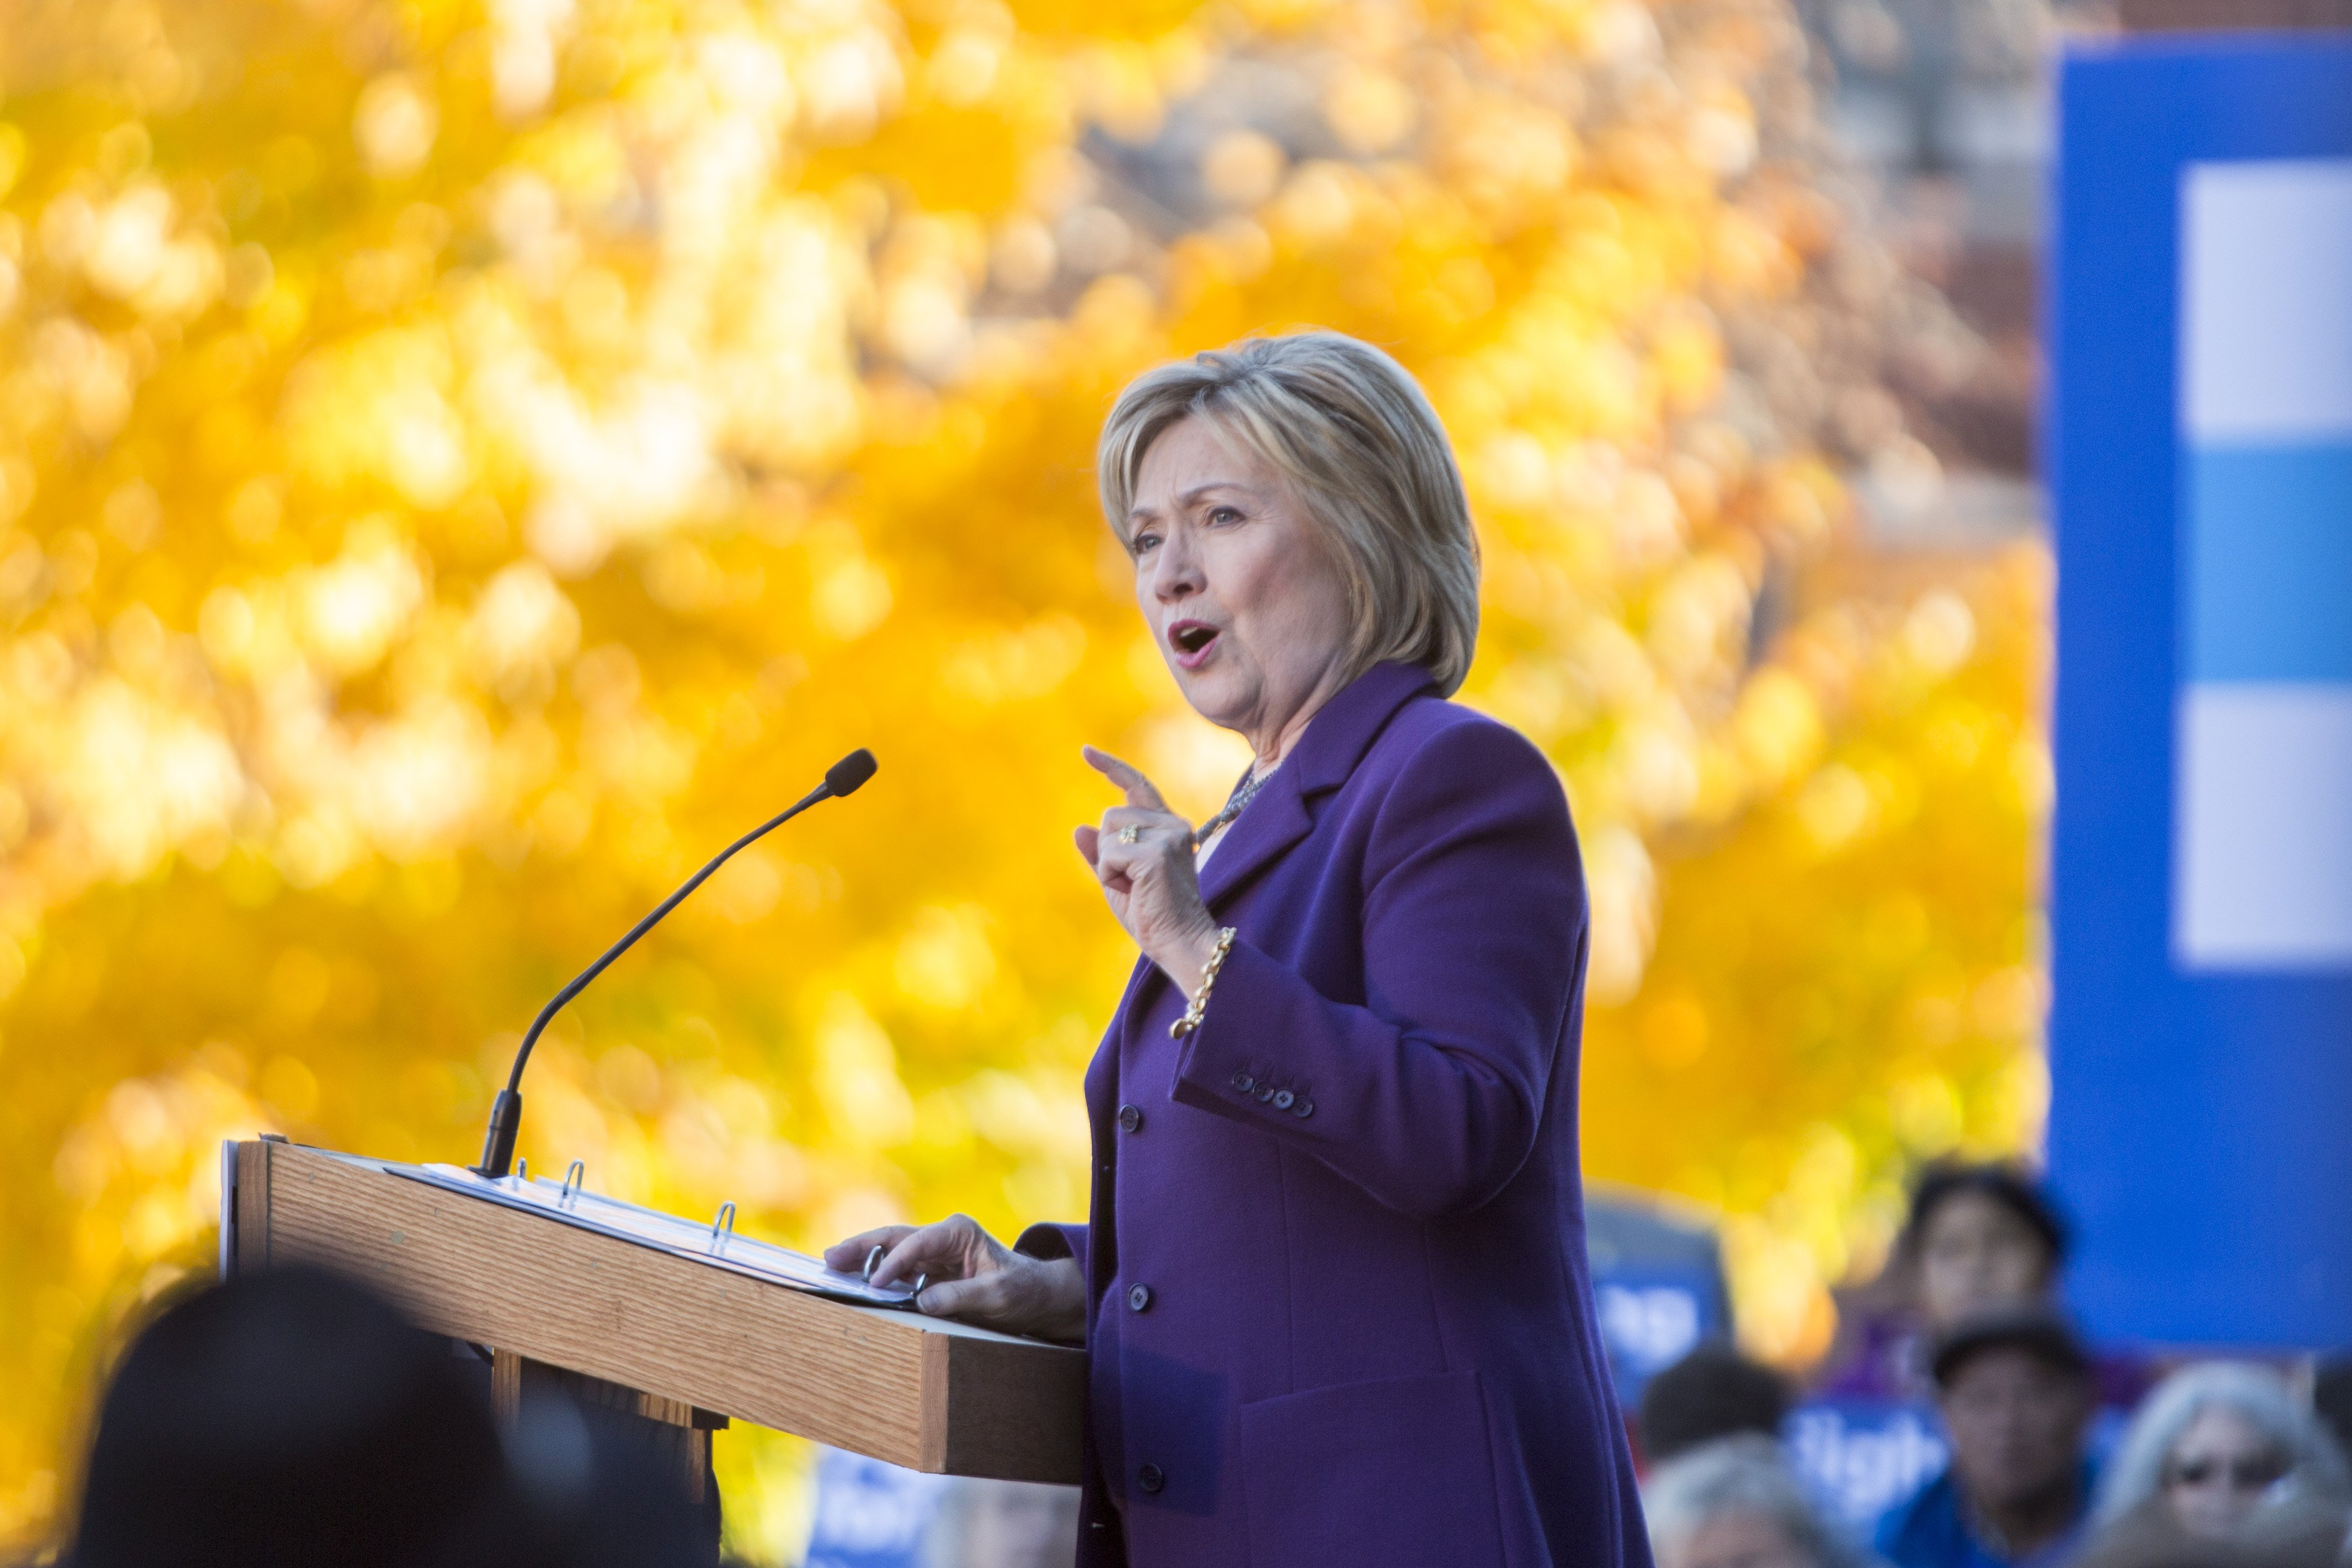 Hillary Clinton speaks on stage during a rally after filing paperwork for the New Hampshire primary in Concord, NH on Nov. 9, 2015.